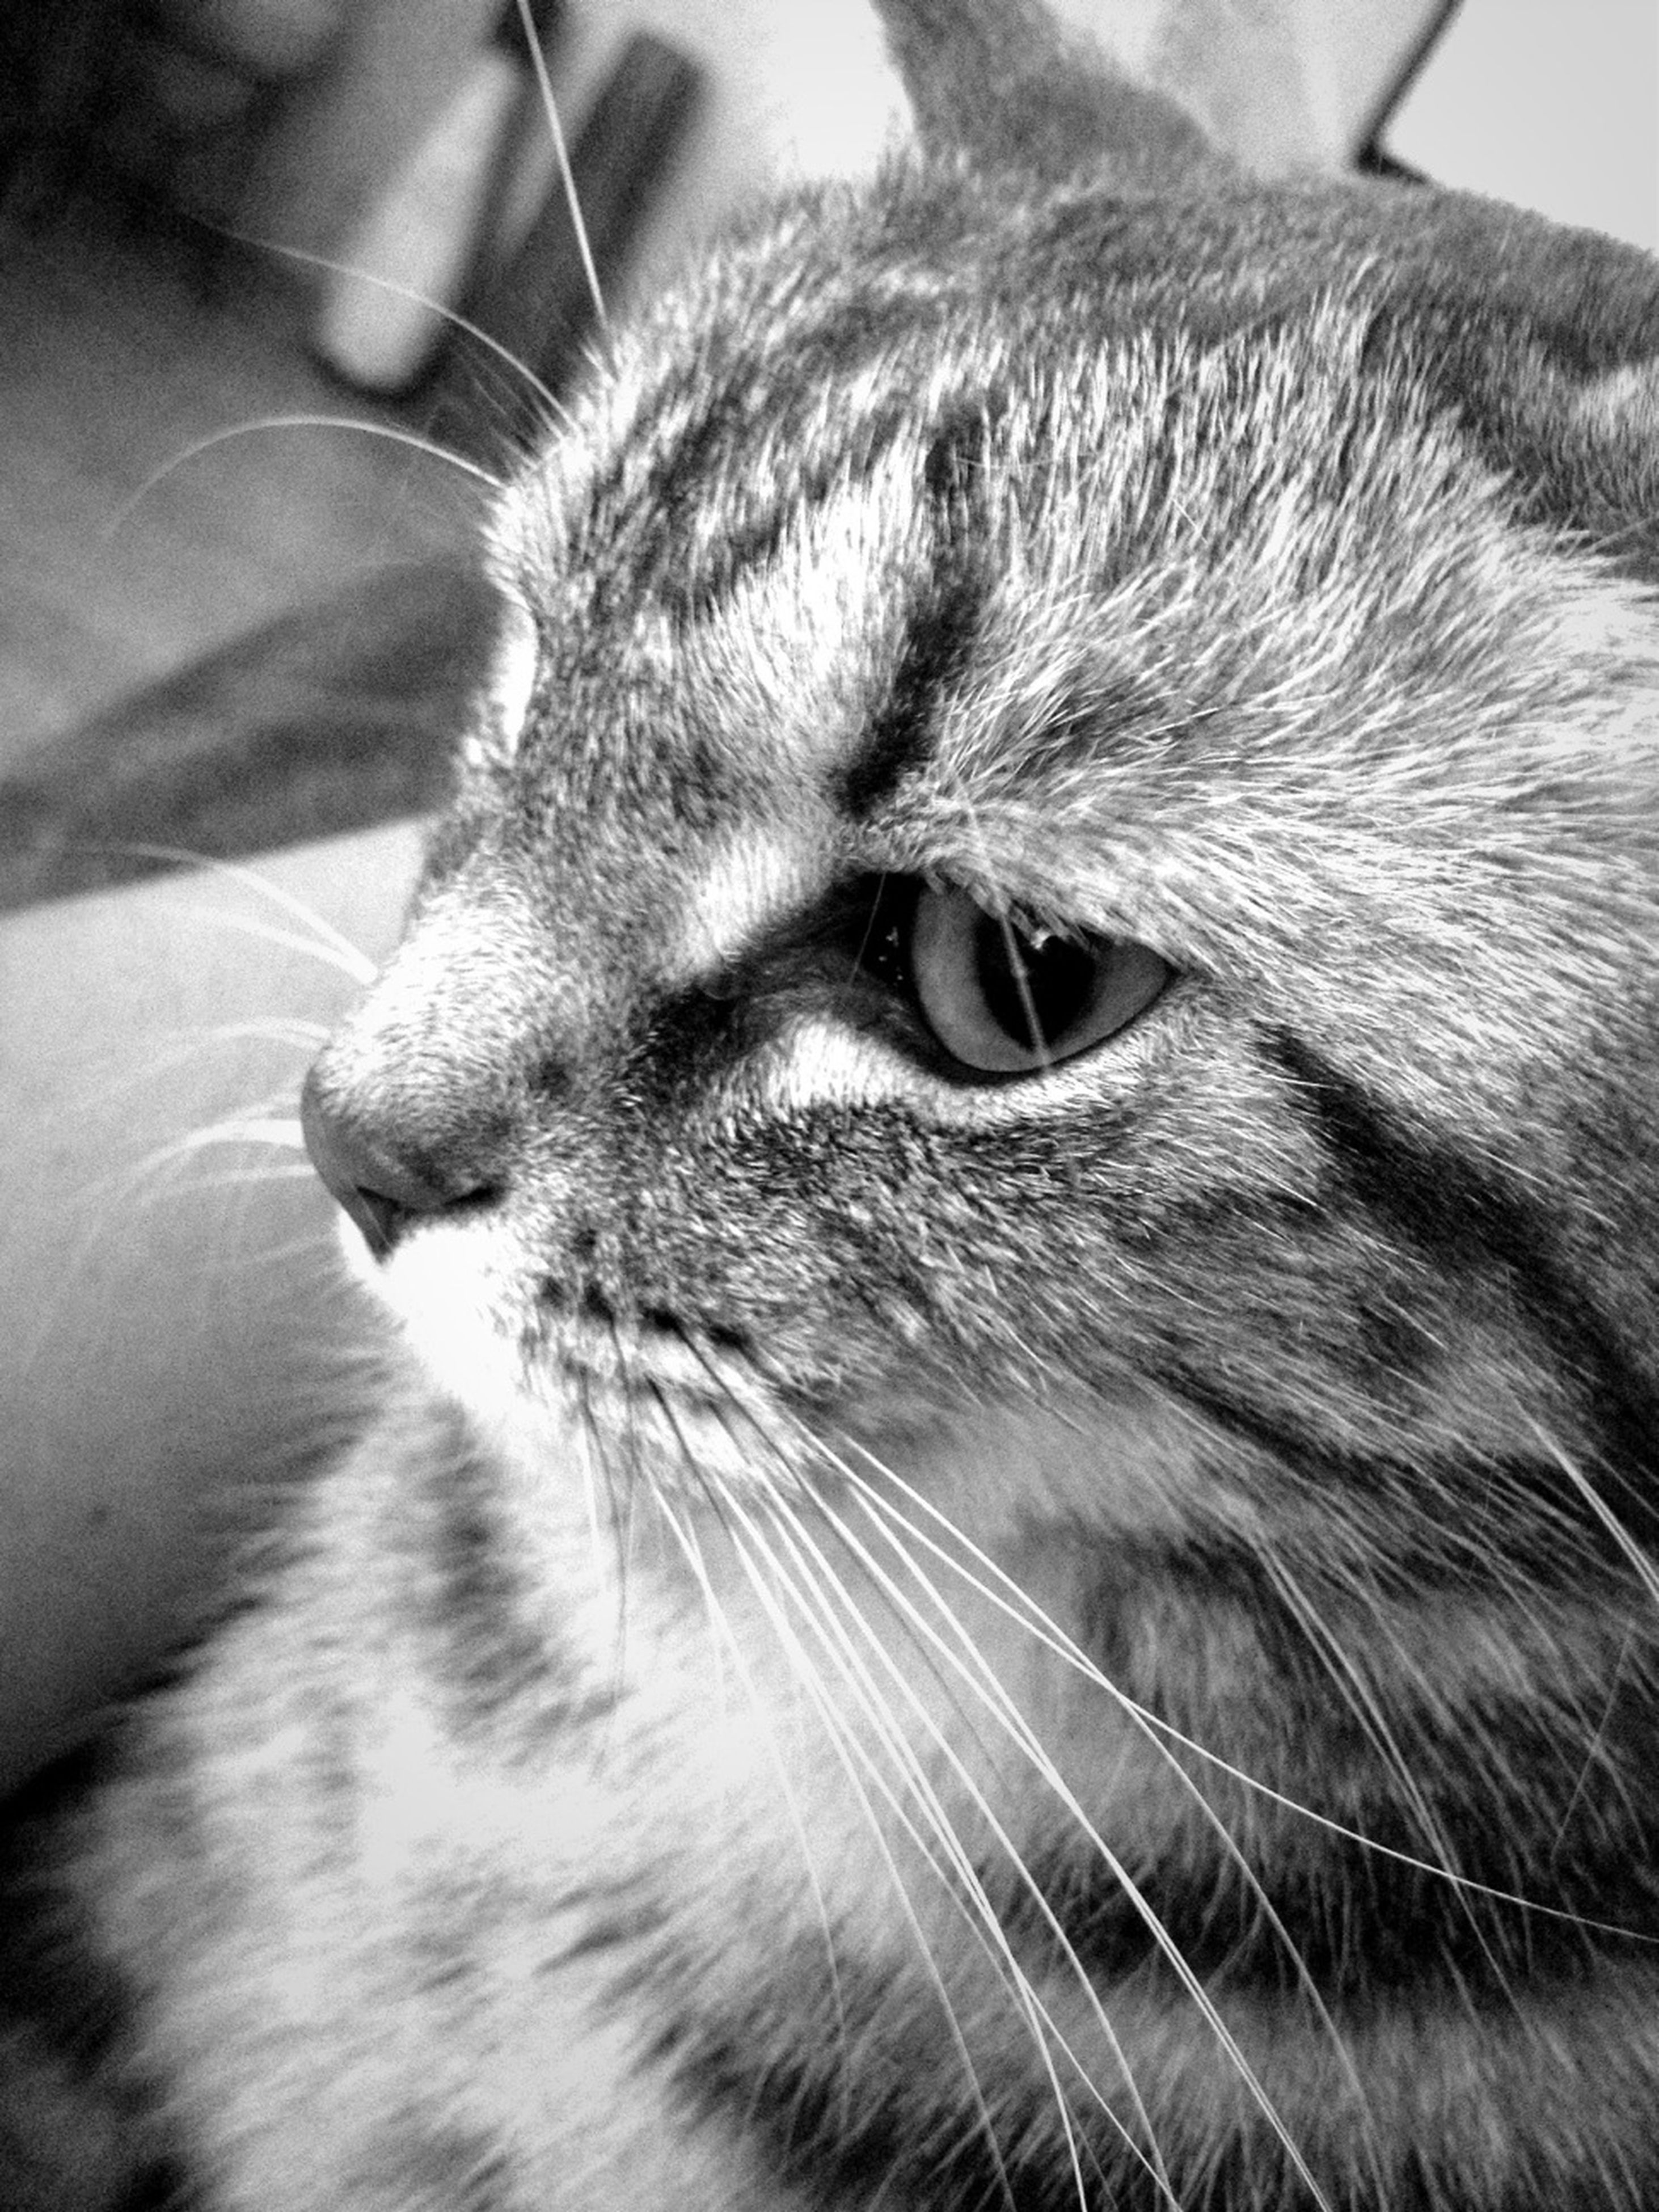 pets, one animal, domestic animals, domestic cat, animal themes, mammal, cat, whisker, feline, close-up, animal head, indoors, animal body part, part of, relaxation, looking away, focus on foreground, animal eye, snout, zoology